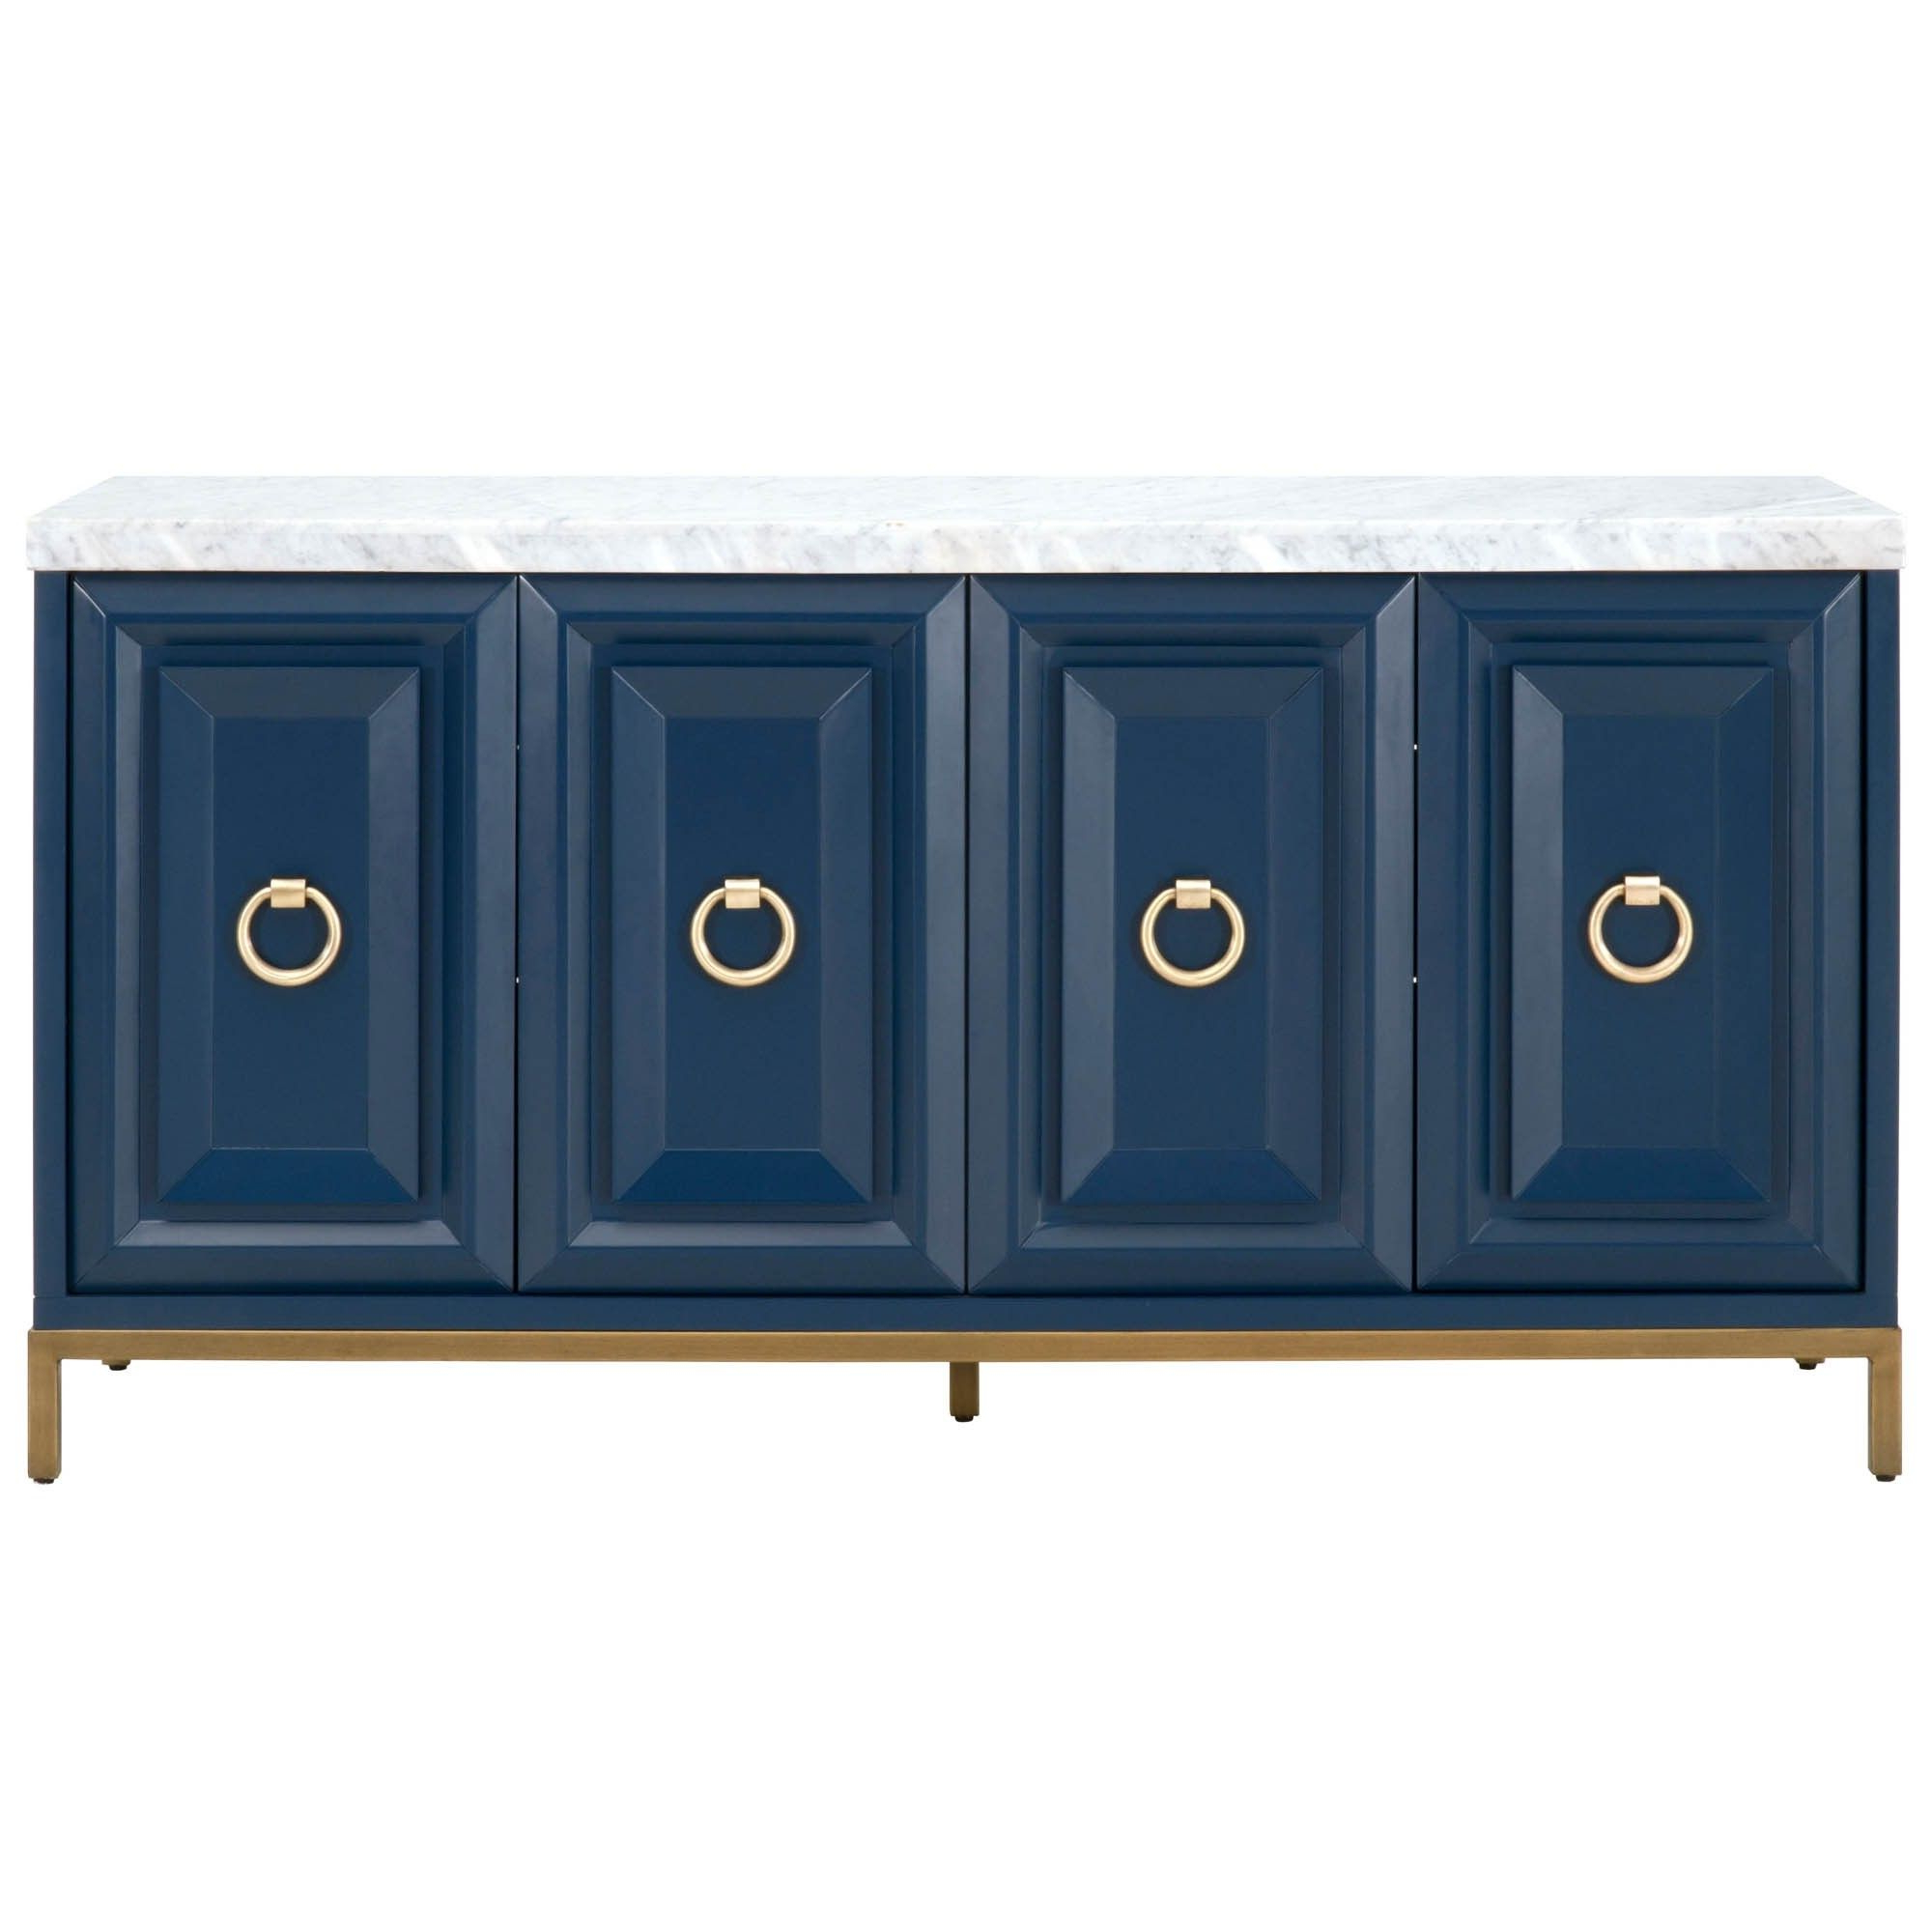 Candelabra Home Azure Carrera Sideboard – Navy | Greenway With Regard To Carrera Contemporary Black Dining Buffets (View 2 of 20)